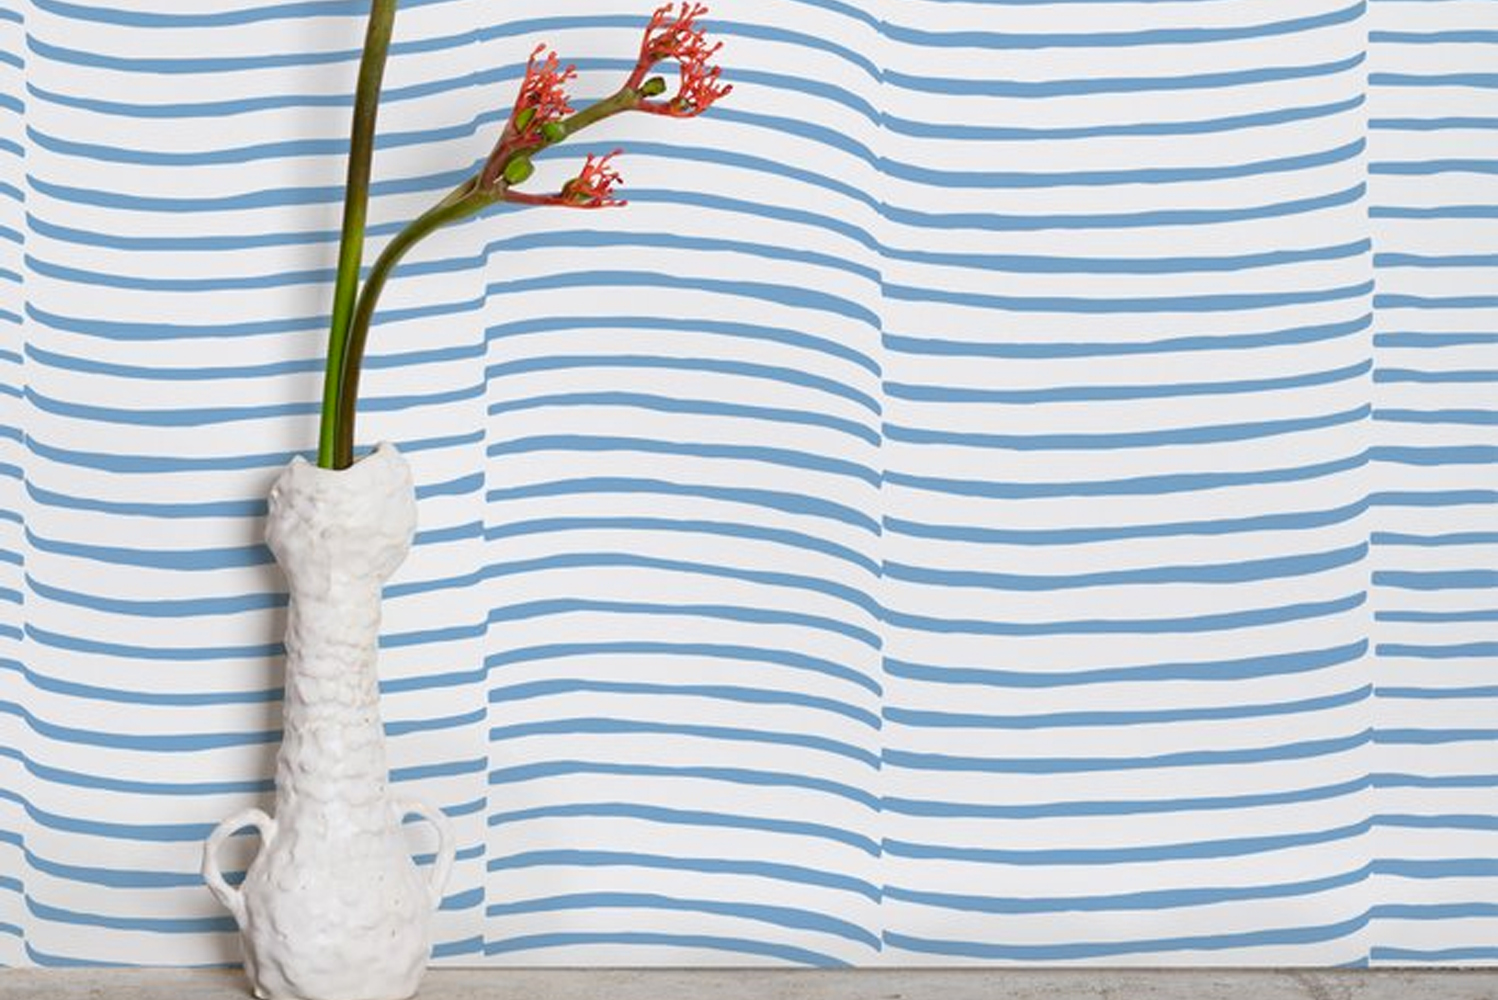 """Waving"" is a billowing stripe depicting rippling curtains or fabric; it also hints at the rising and falling surf."